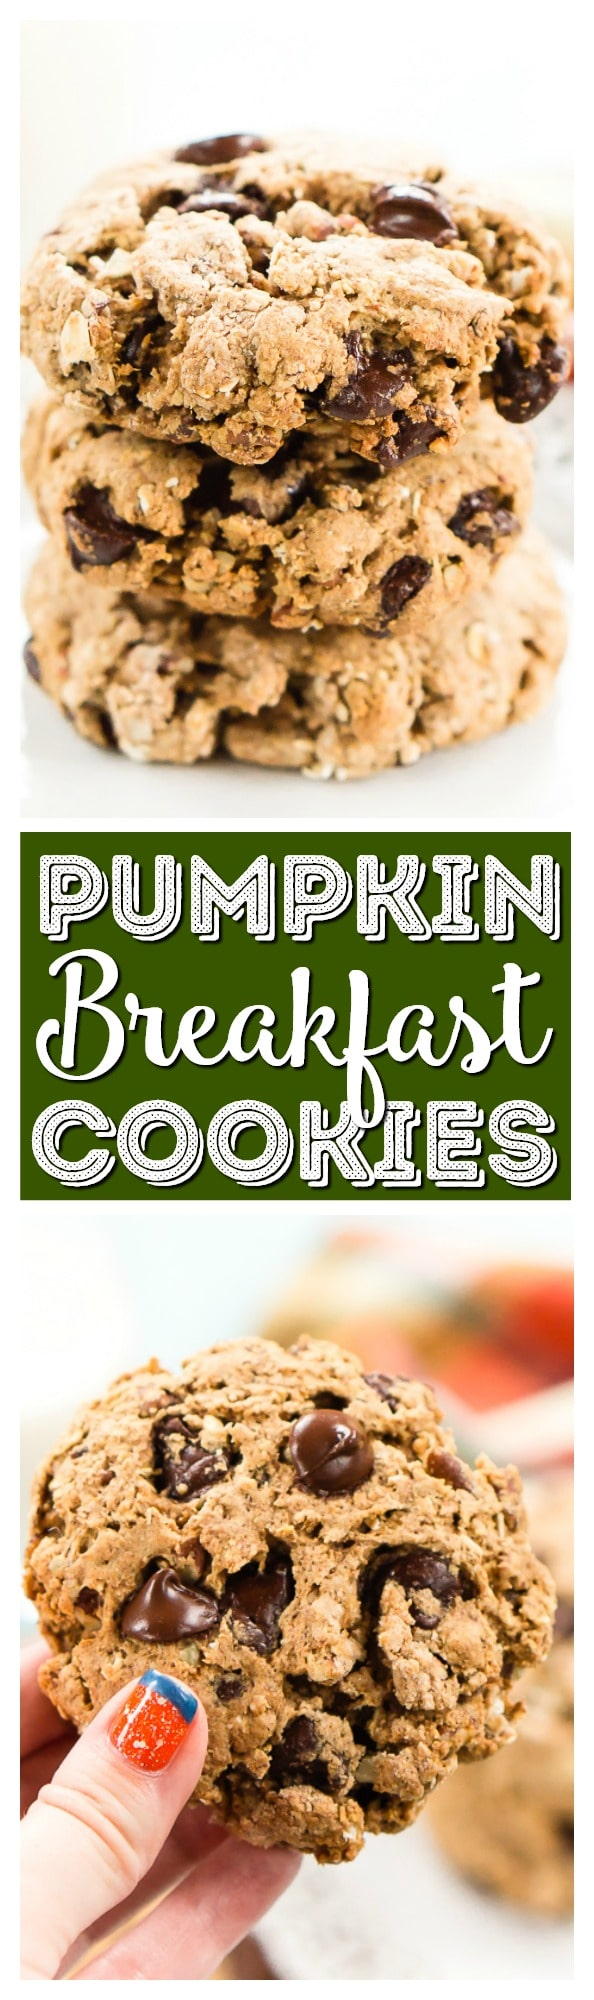 These Pumpkin Chocolate Chip Breakfast Cookies are a hearty and wholesome start to your fall mornings! They're loaded with pumpkin, oatmeal, whole wheat, apple sauce, and more! Whip them up in less than 30 minutes and enjoy them all week long! via @sugarandsoulco